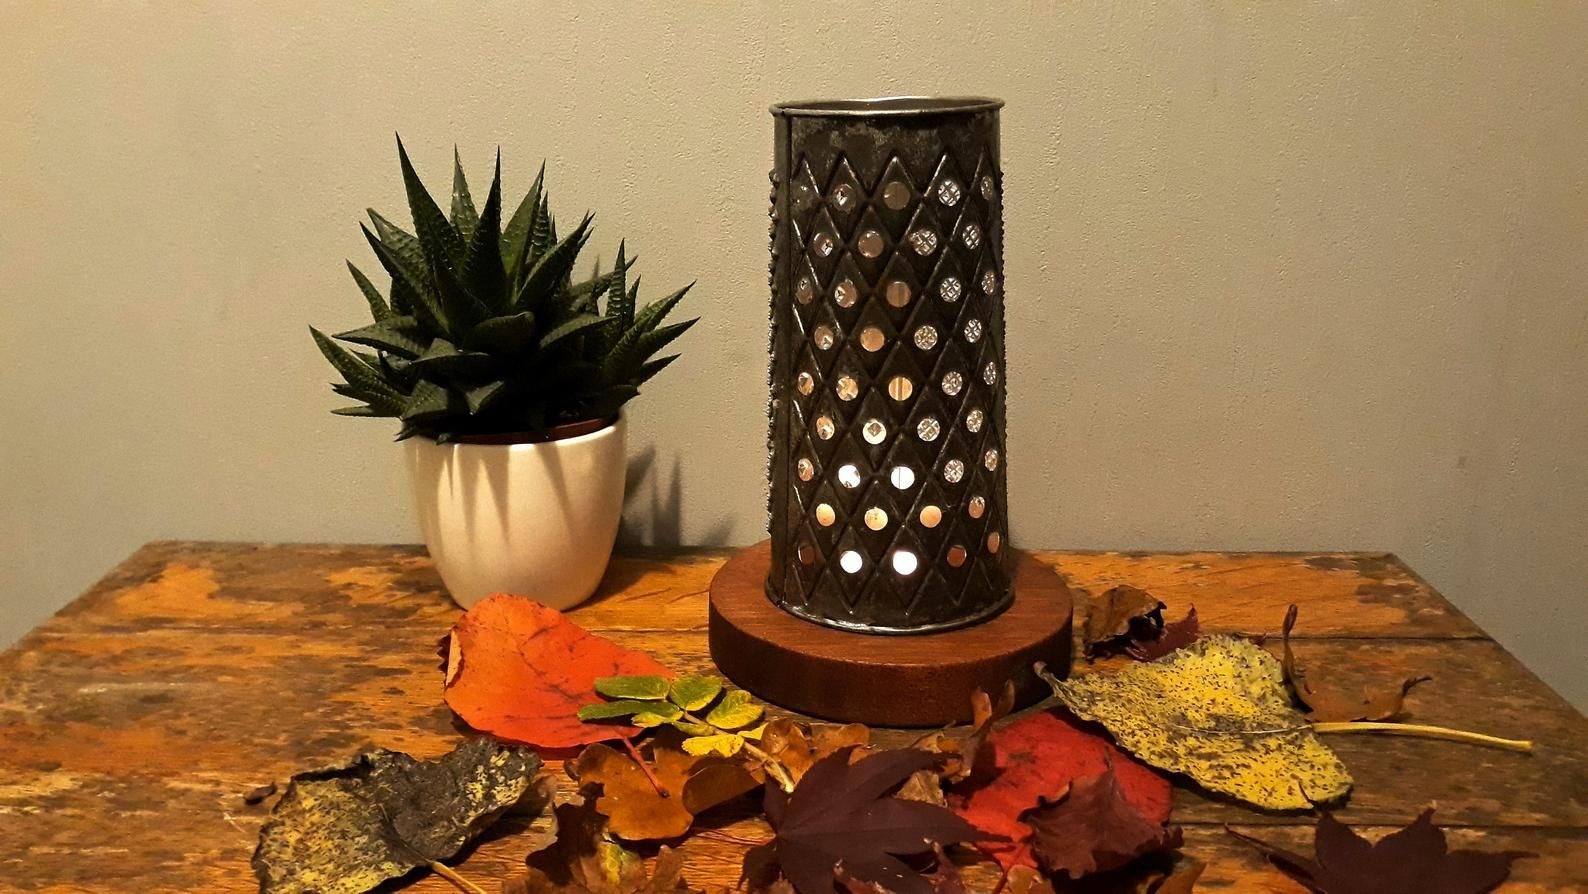 This candle holder will illuminate any tea light candle through the holes of the rusty vintage cheese grater. Full of character, beautifully aged and tarnished, dates to the 1950s -1960s. It sits on a reclaimed, hand crafted, natural finished round hardwood. The stand can be used in itself as a tea light holder, while the grater can be a great centerpiece of any farmhouse kitchen or part of a primitive christmas decorations.